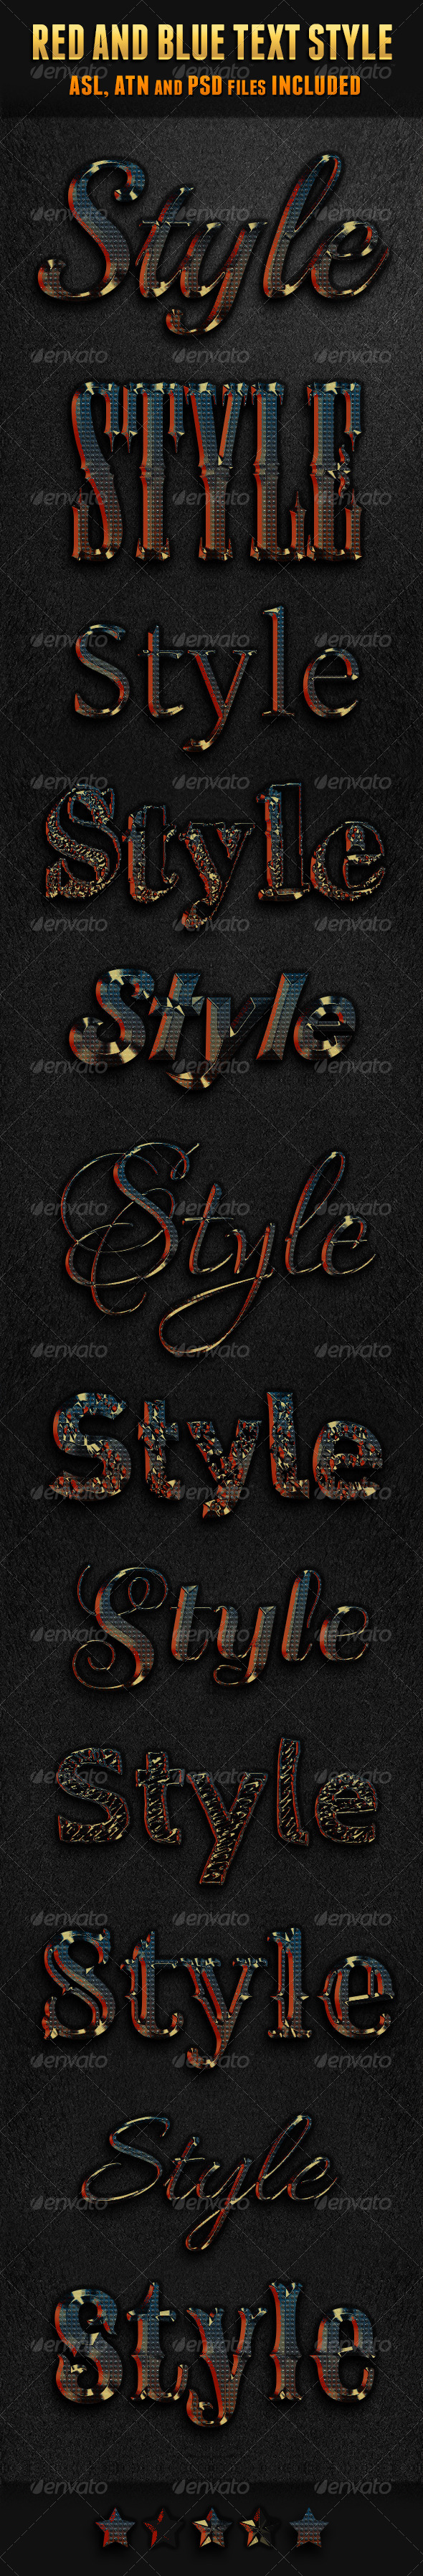 GraphicRiver Red And Blue Text Style 5928794